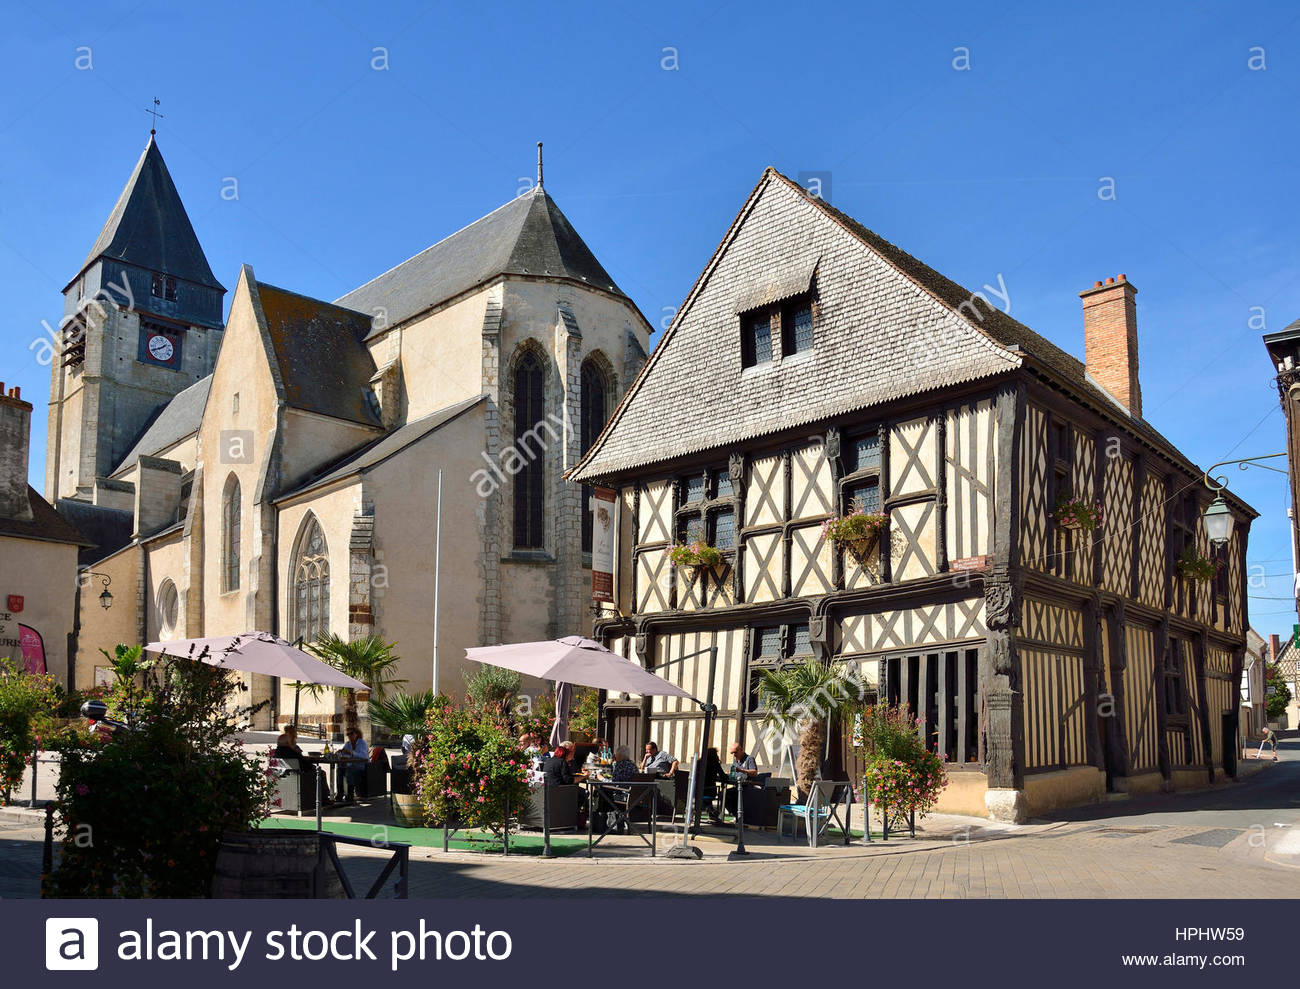 16th Century French Home - france-centres-cher-sologne-aubigny-sur-nere-half-timbered-house-known-HPHW59_Amazing 16th Century French Home - france-centres-cher-sologne-aubigny-sur-nere-half-timbered-house-known-HPHW59  Trends_13614.jpg